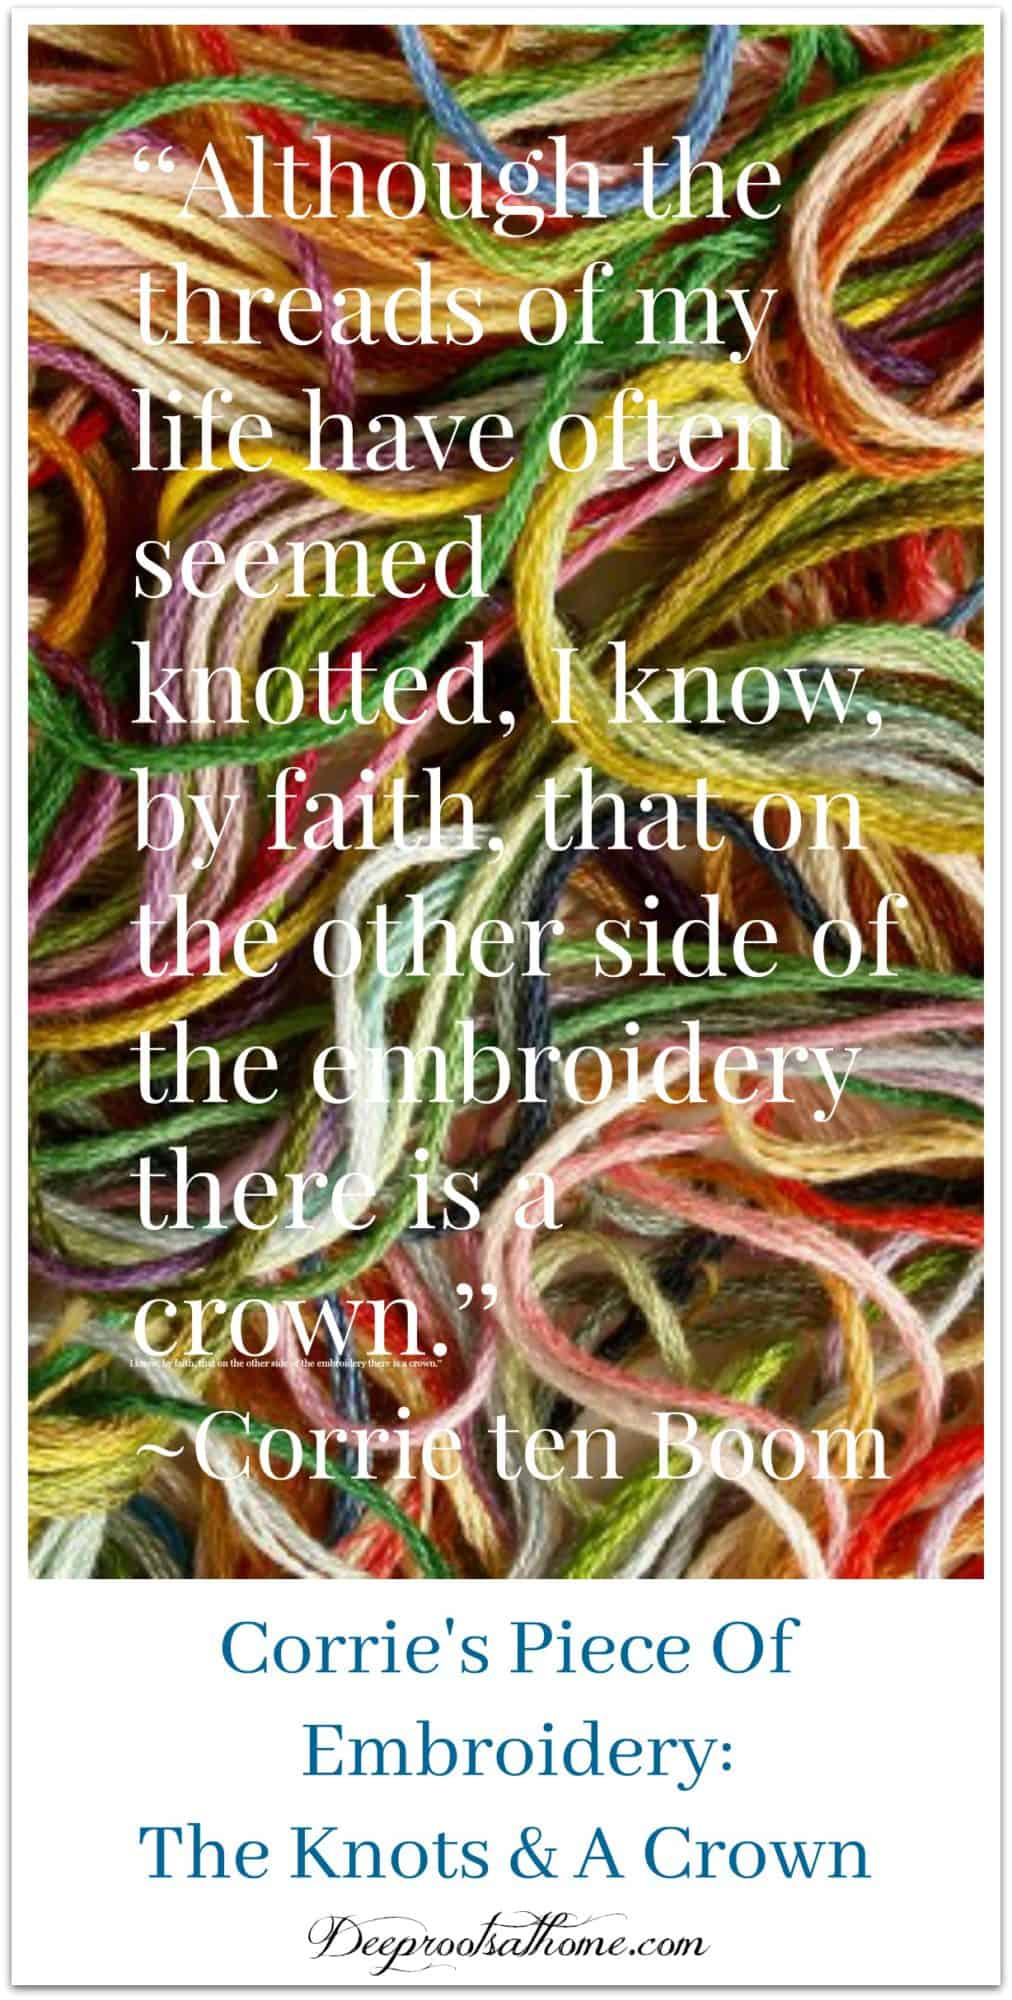 Corrie Ten Boom's Piece Of Embroidery | Knots & A Crown. Tangled threads of life